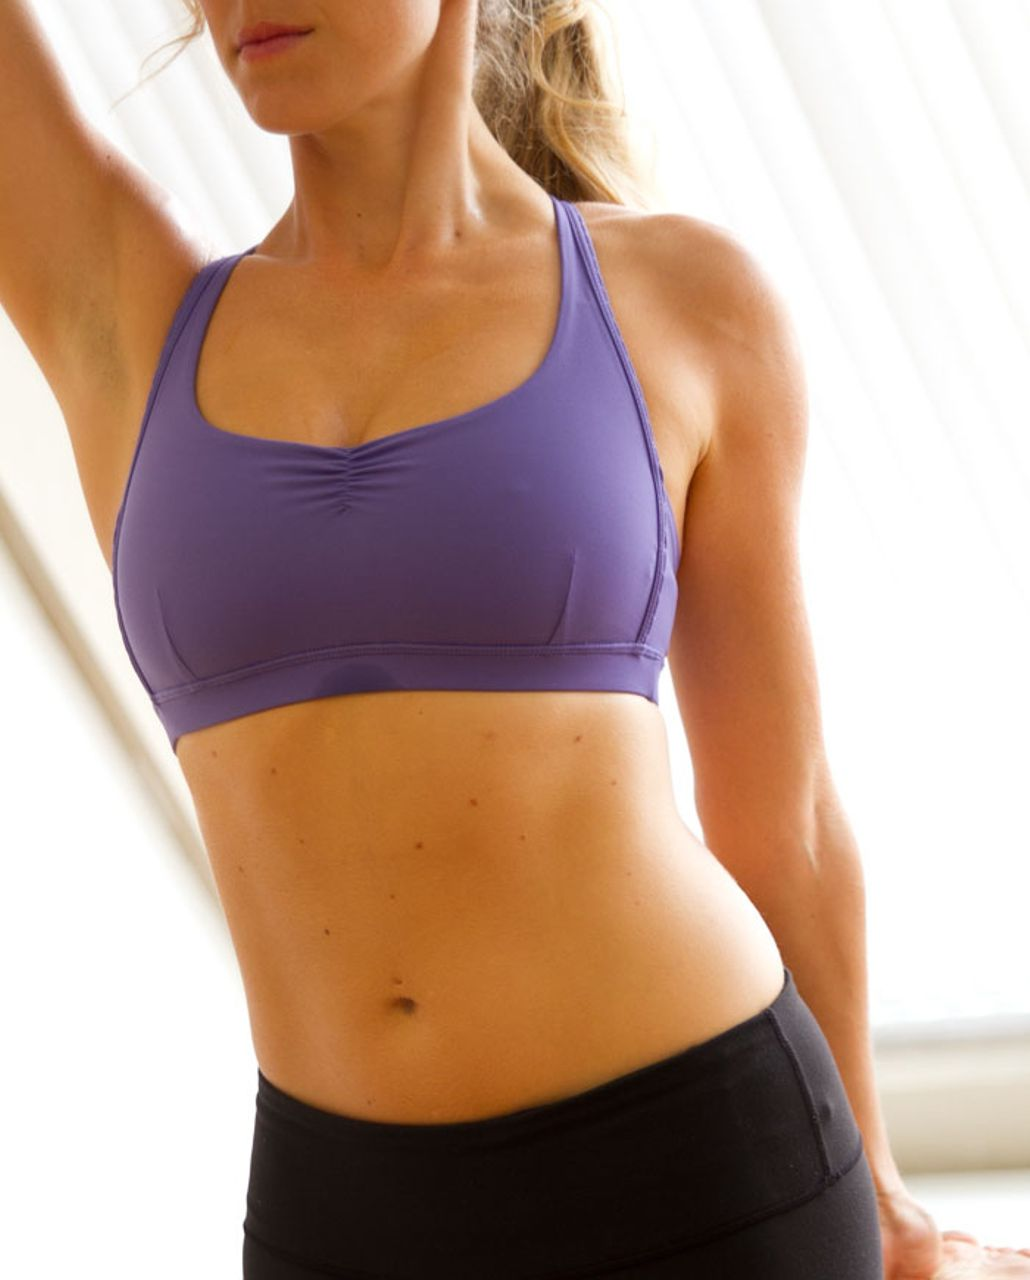 Lululemon Hot 'N Sweaty Bra - Persian Purple